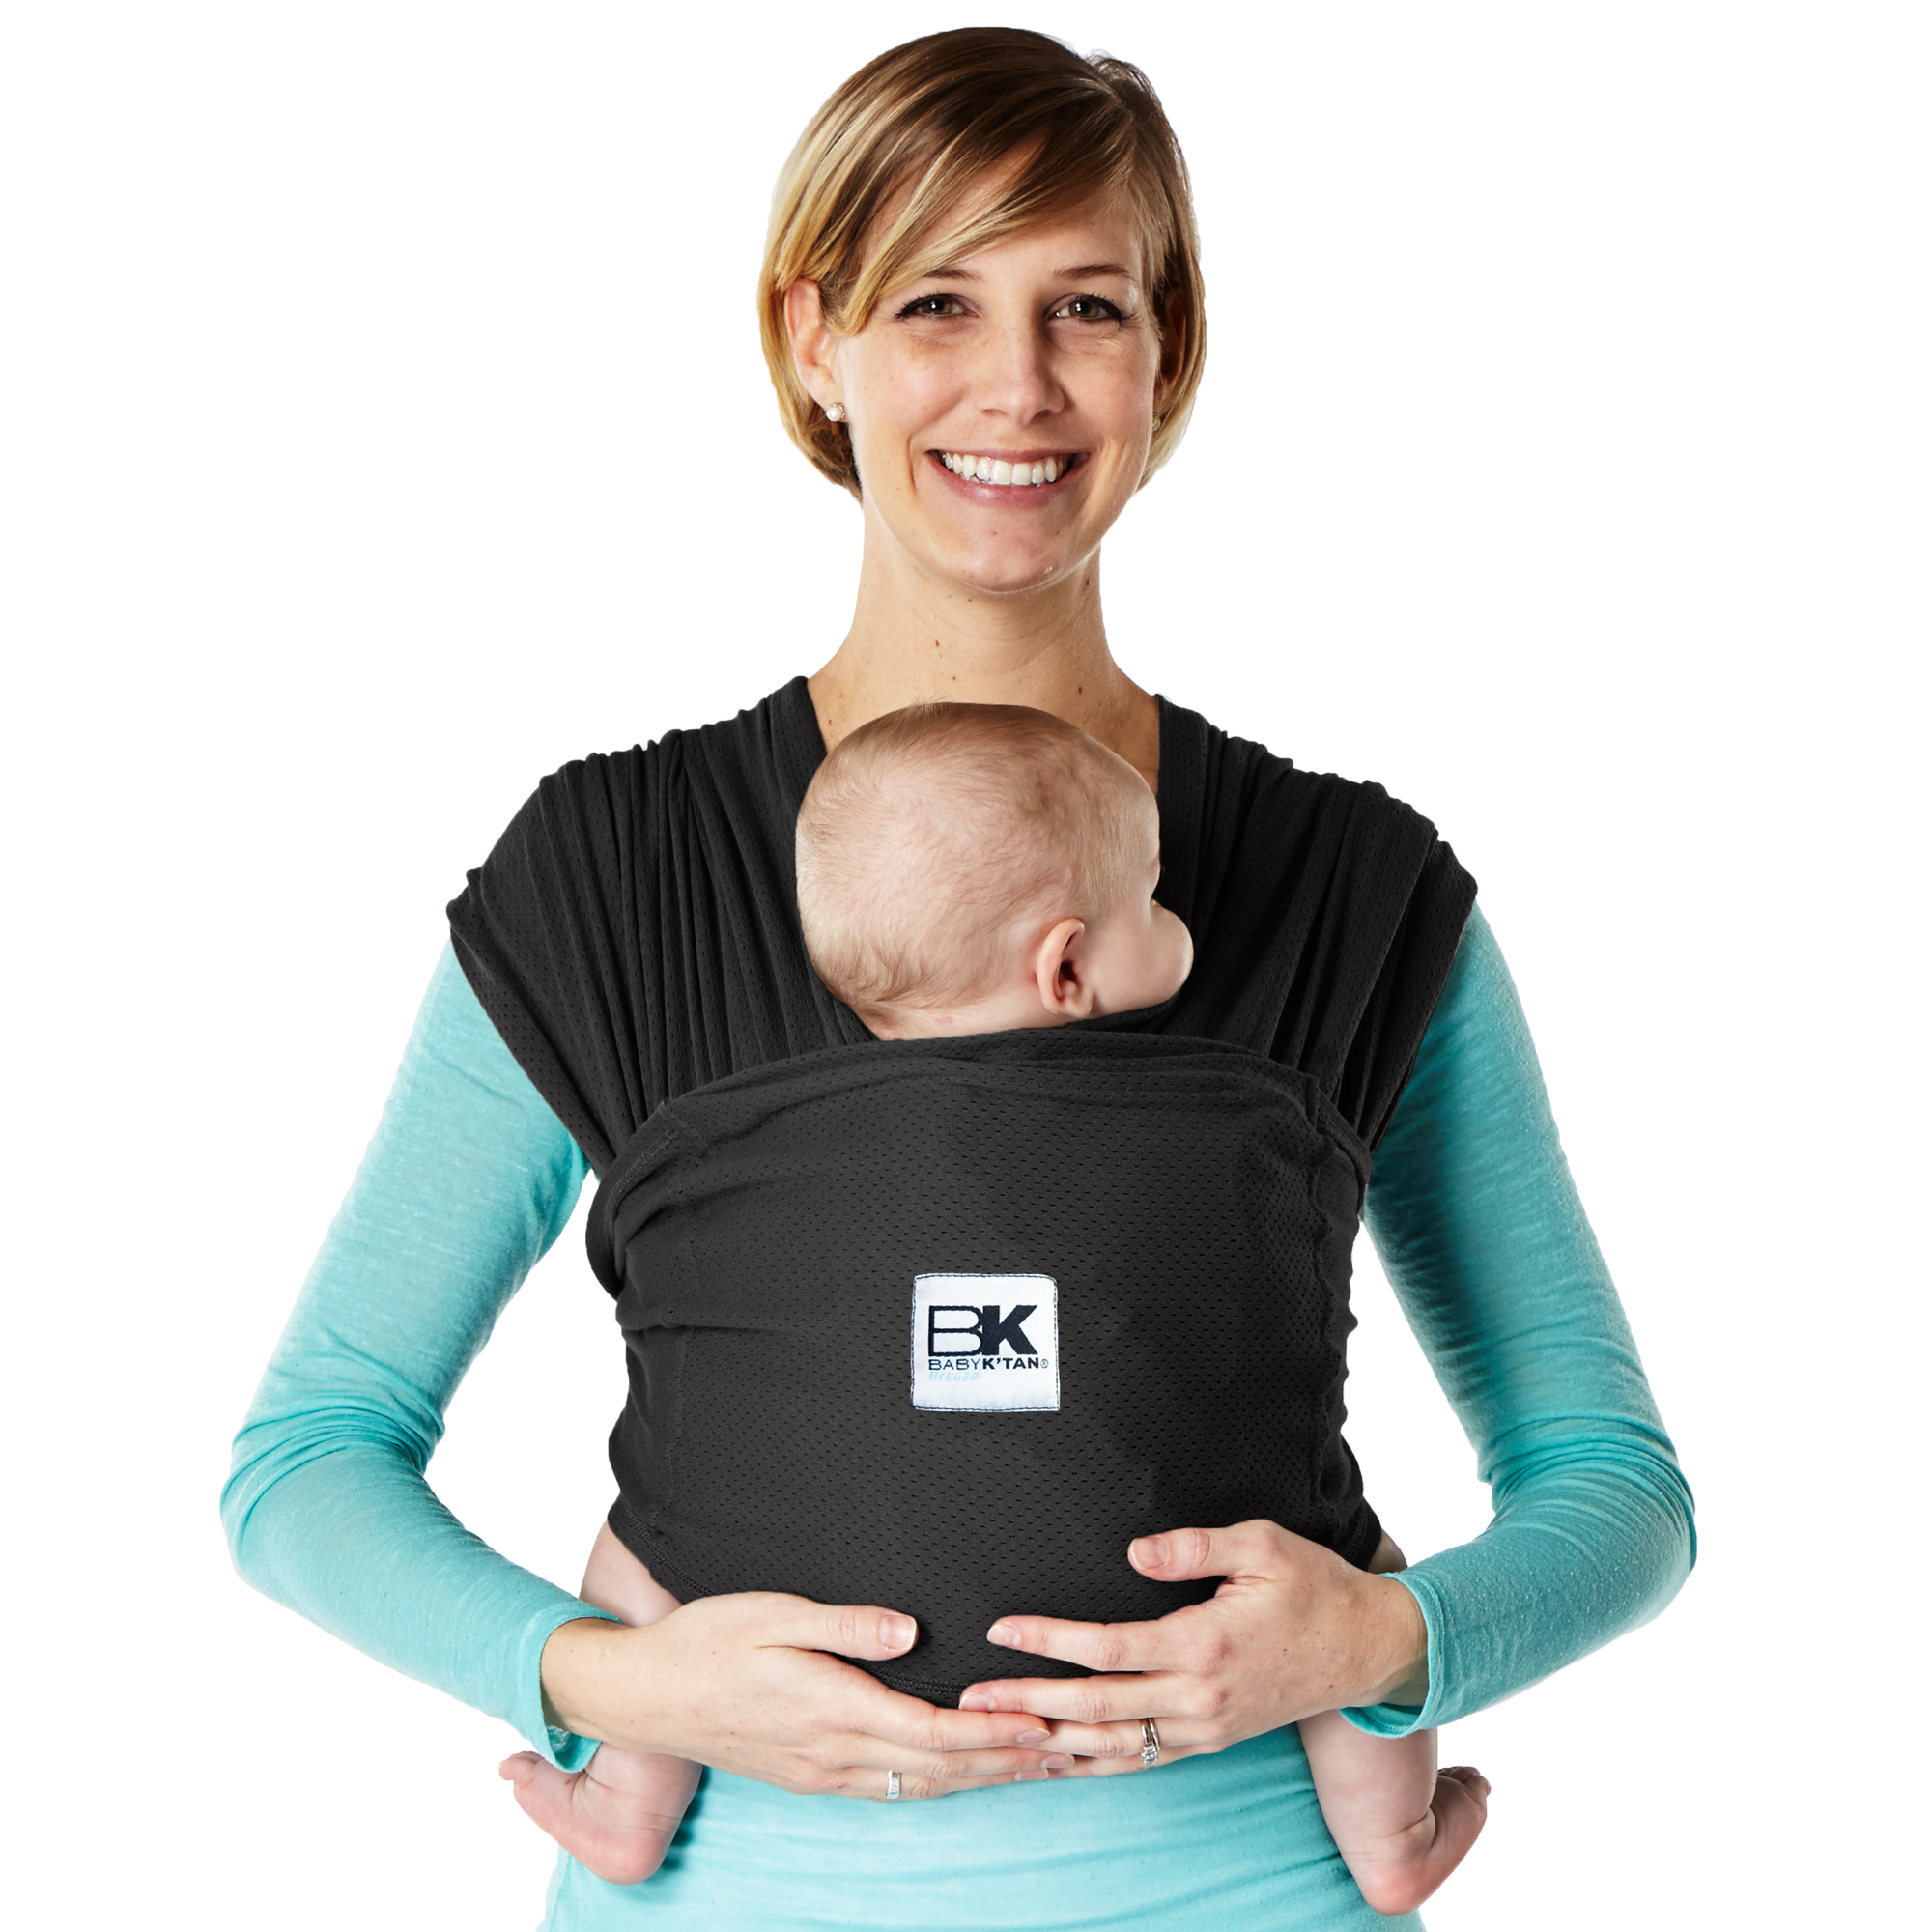 Baby K'tan BREEZE Baby Carrier - Black- M